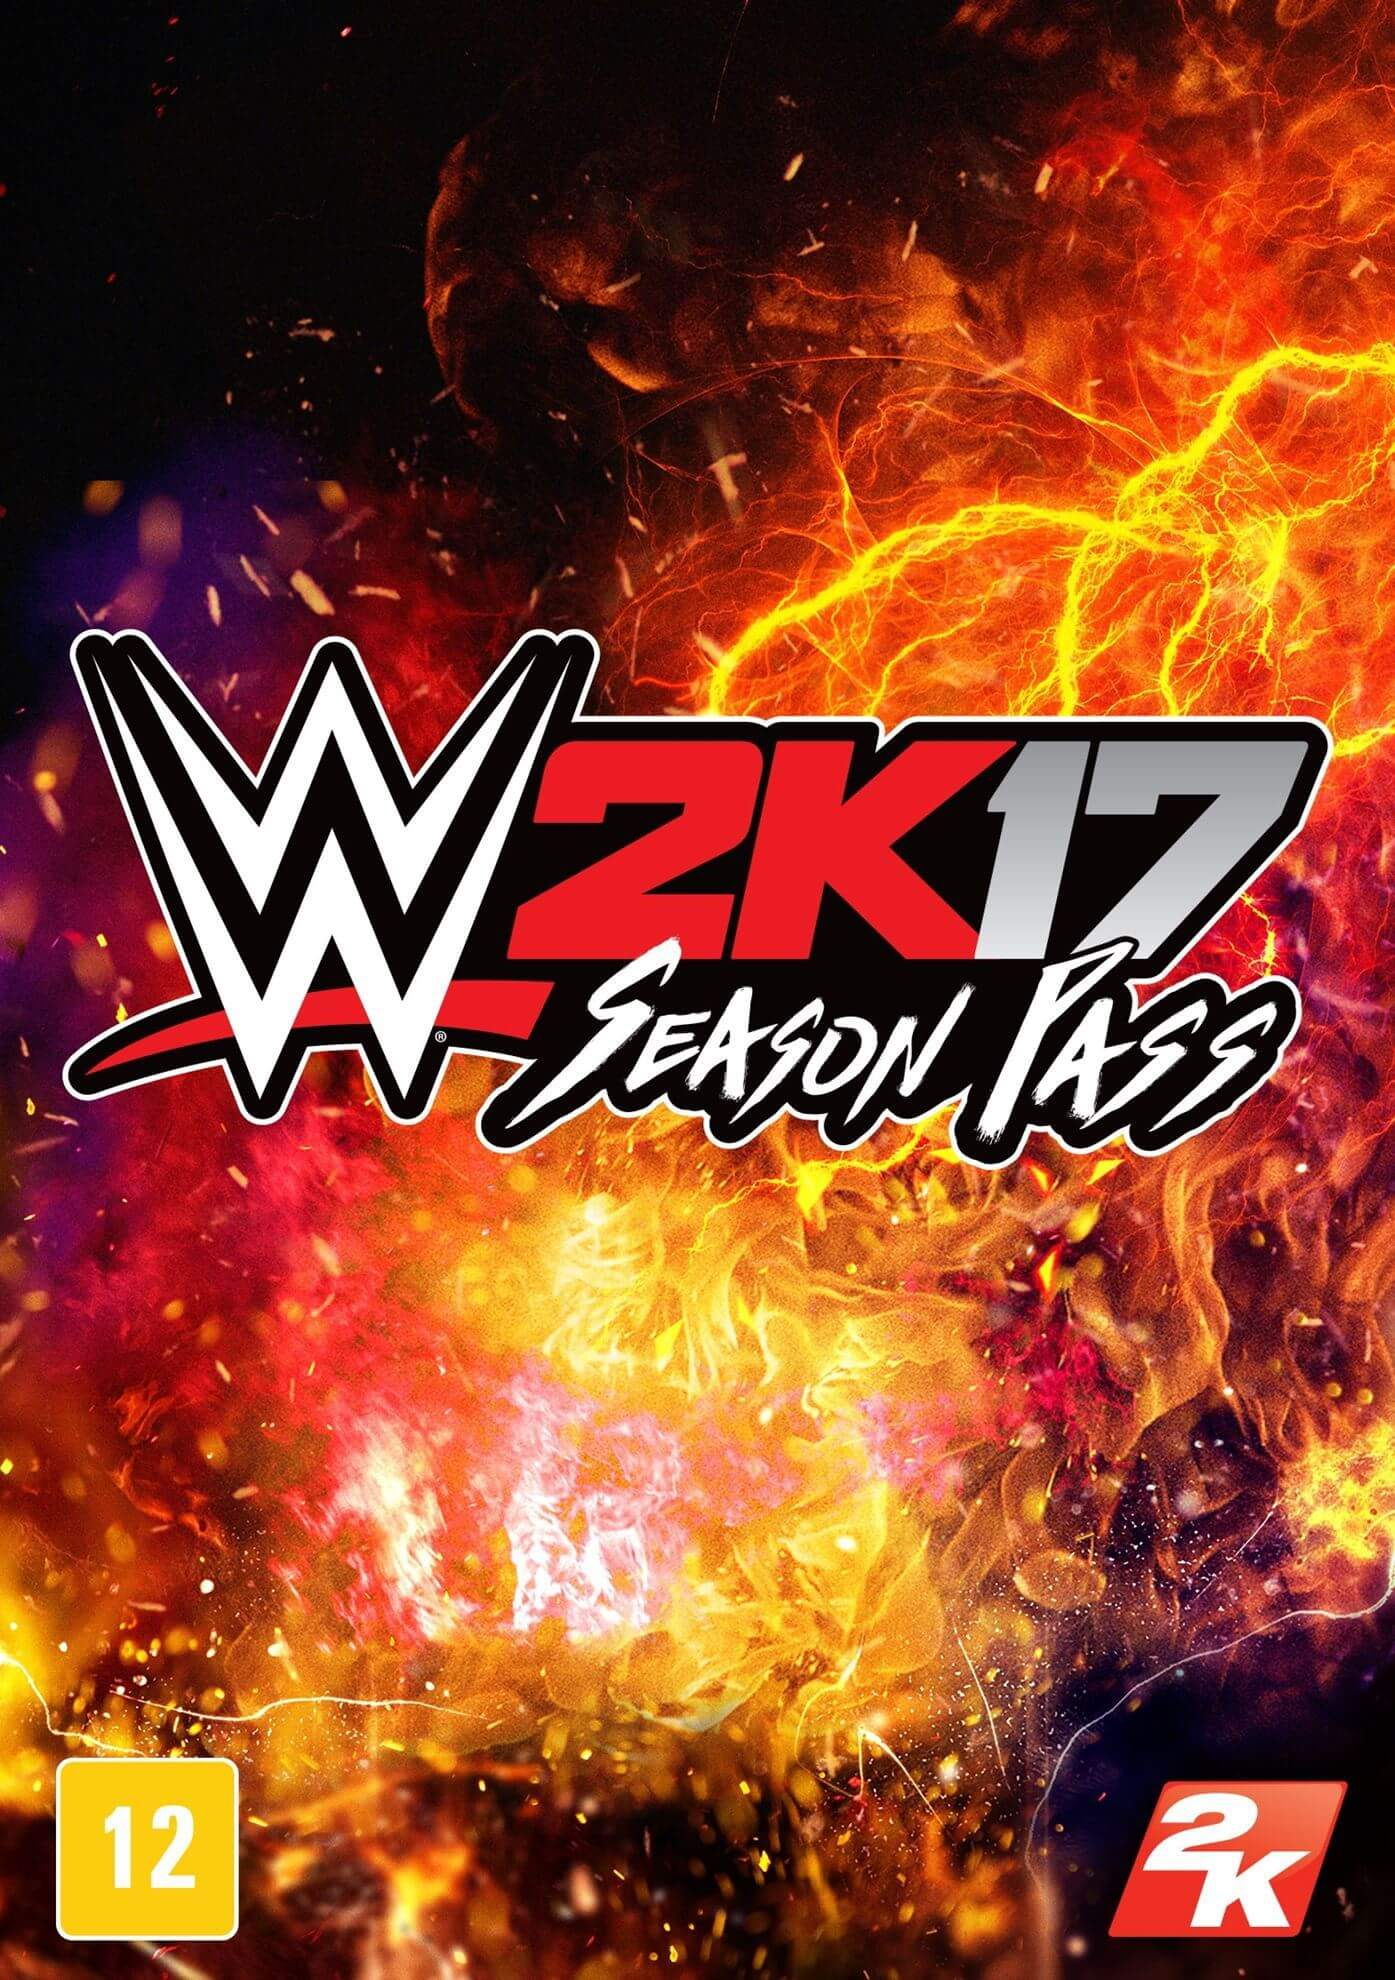 WWE 2K17 - Season Pass (ROW)